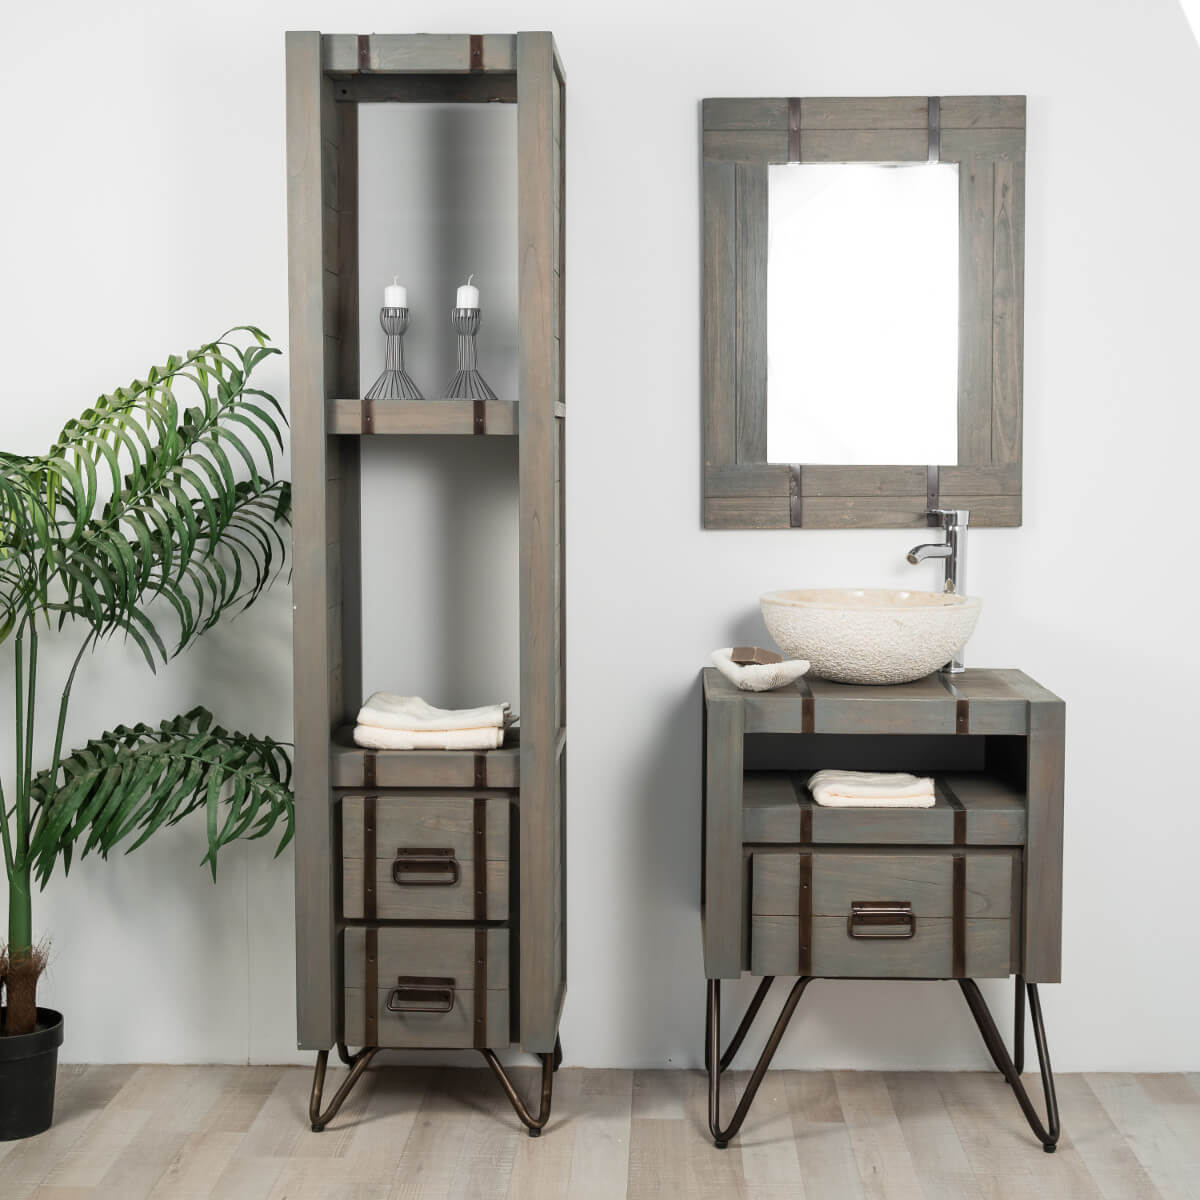 miroir de salle de bain loft 60x80 gris. Black Bedroom Furniture Sets. Home Design Ideas